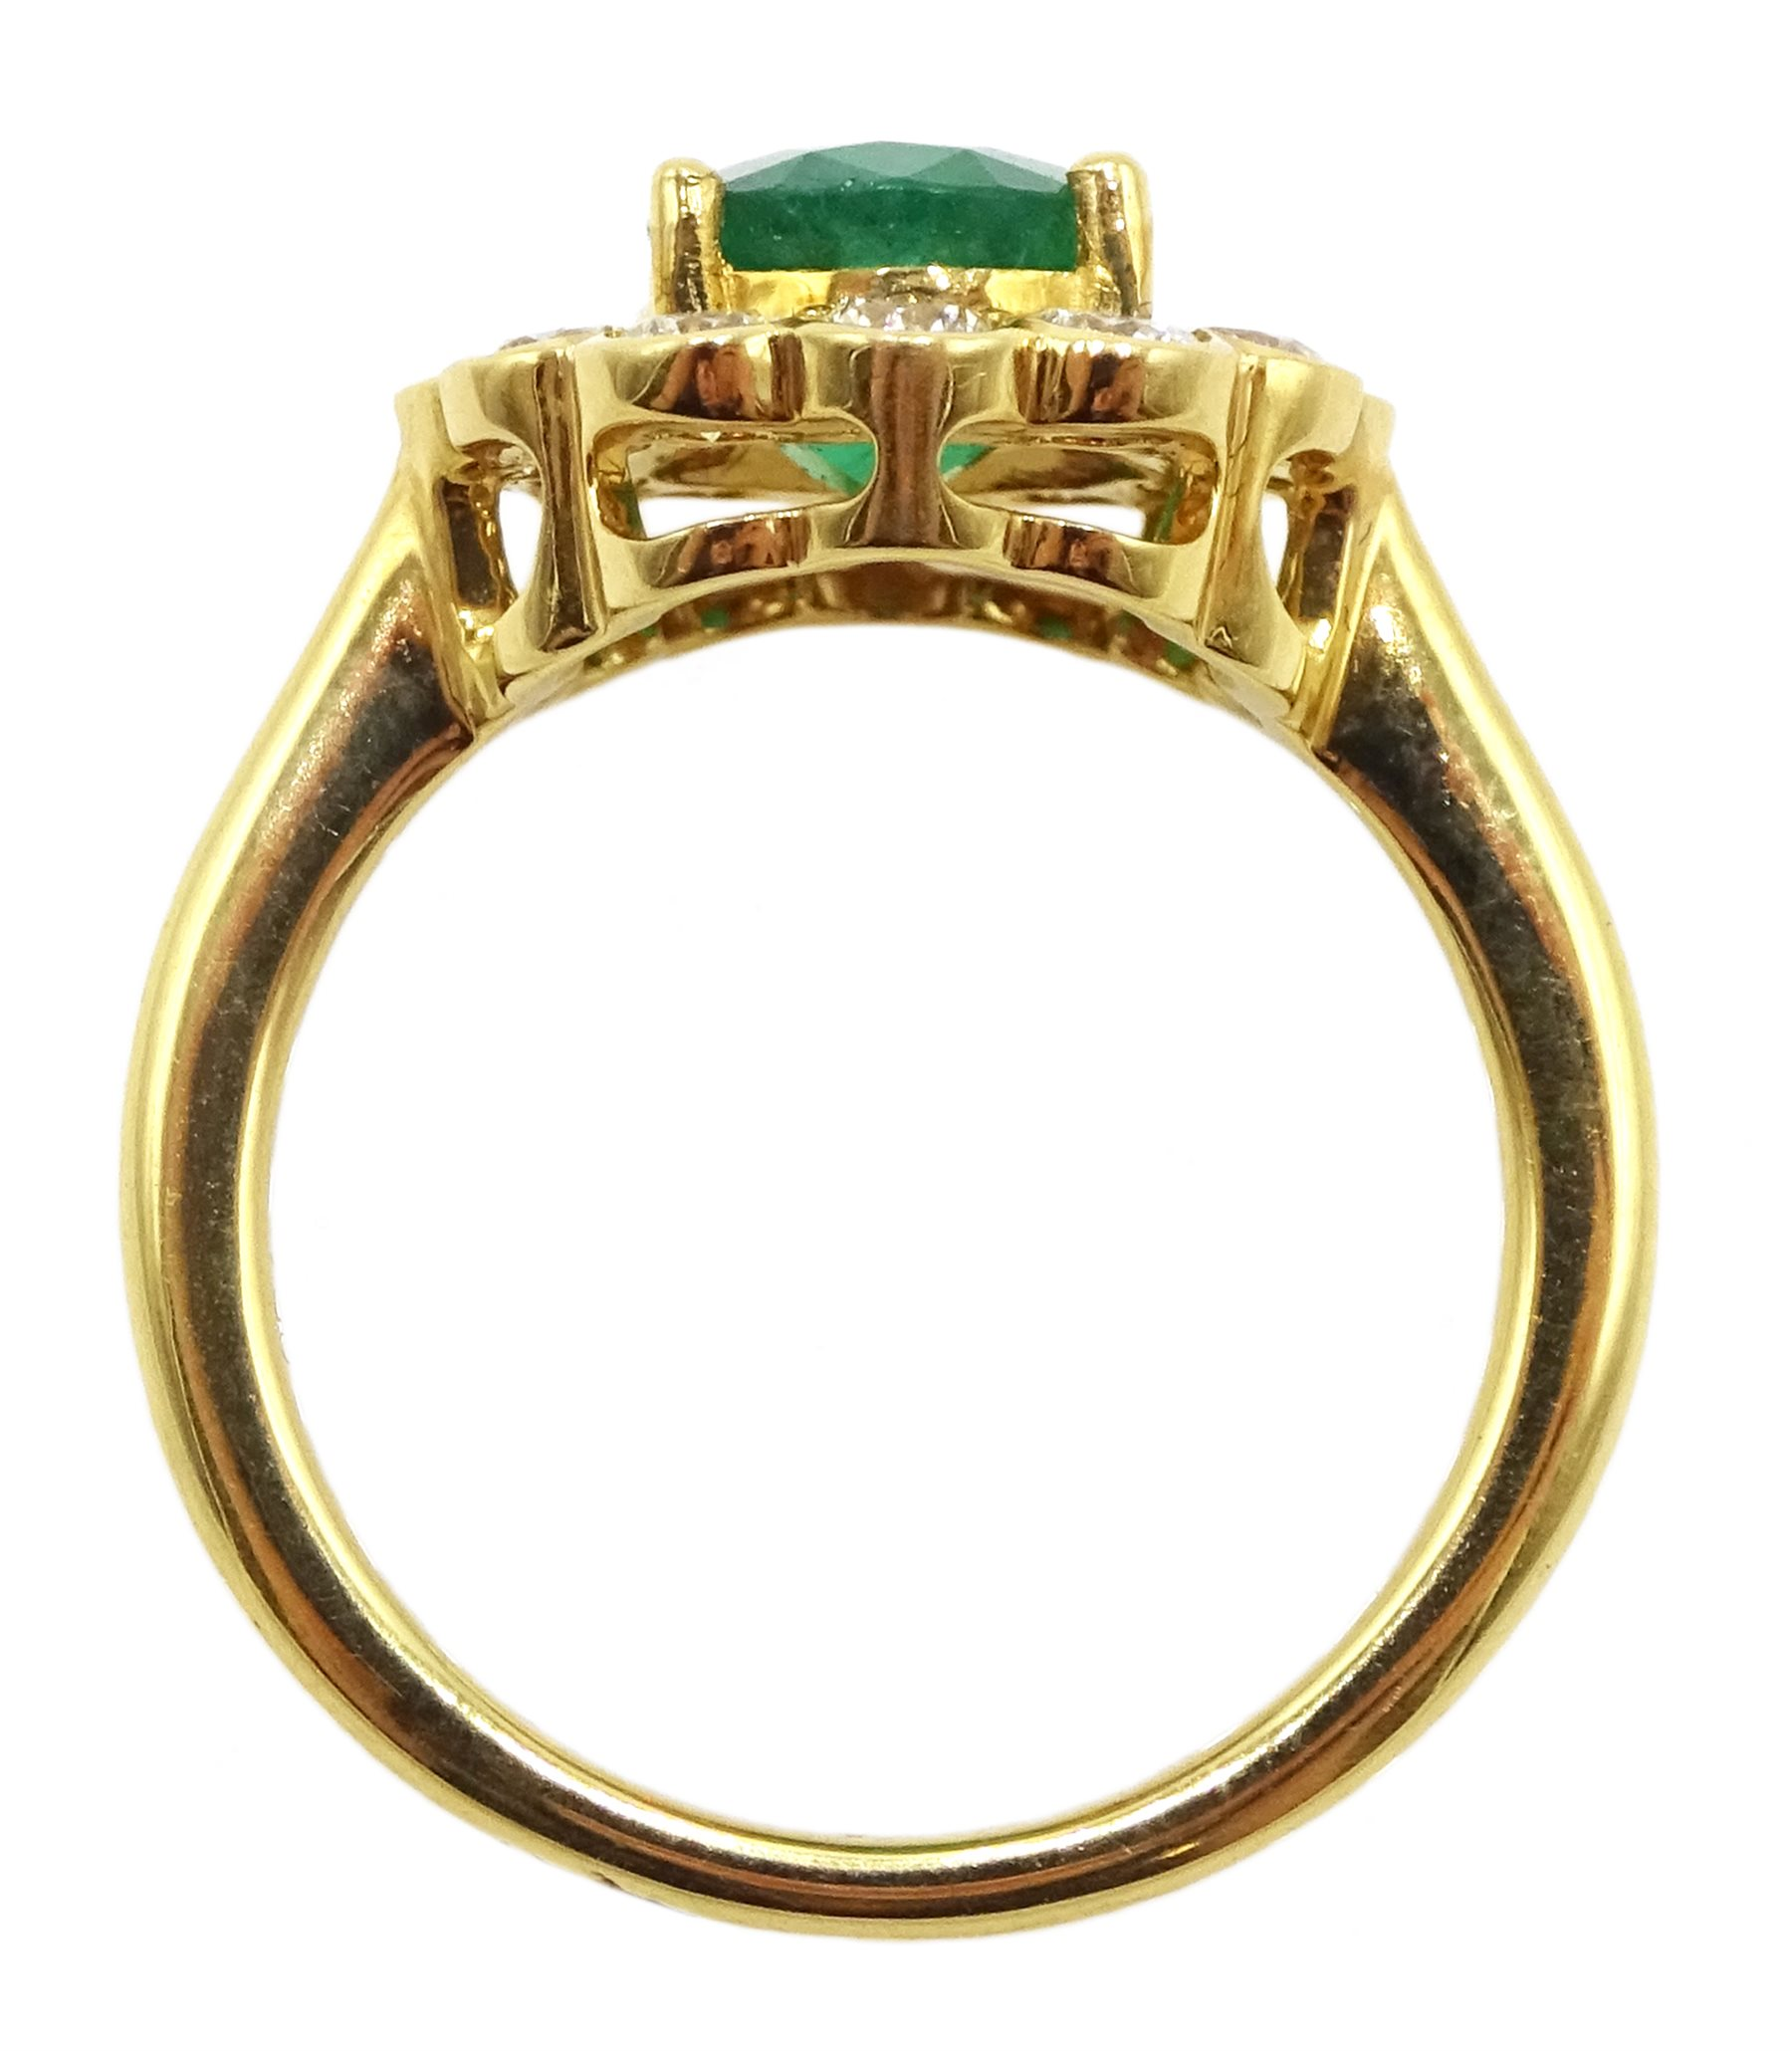 18ct gold oval emerald and diamond cluster ring - Image 5 of 5